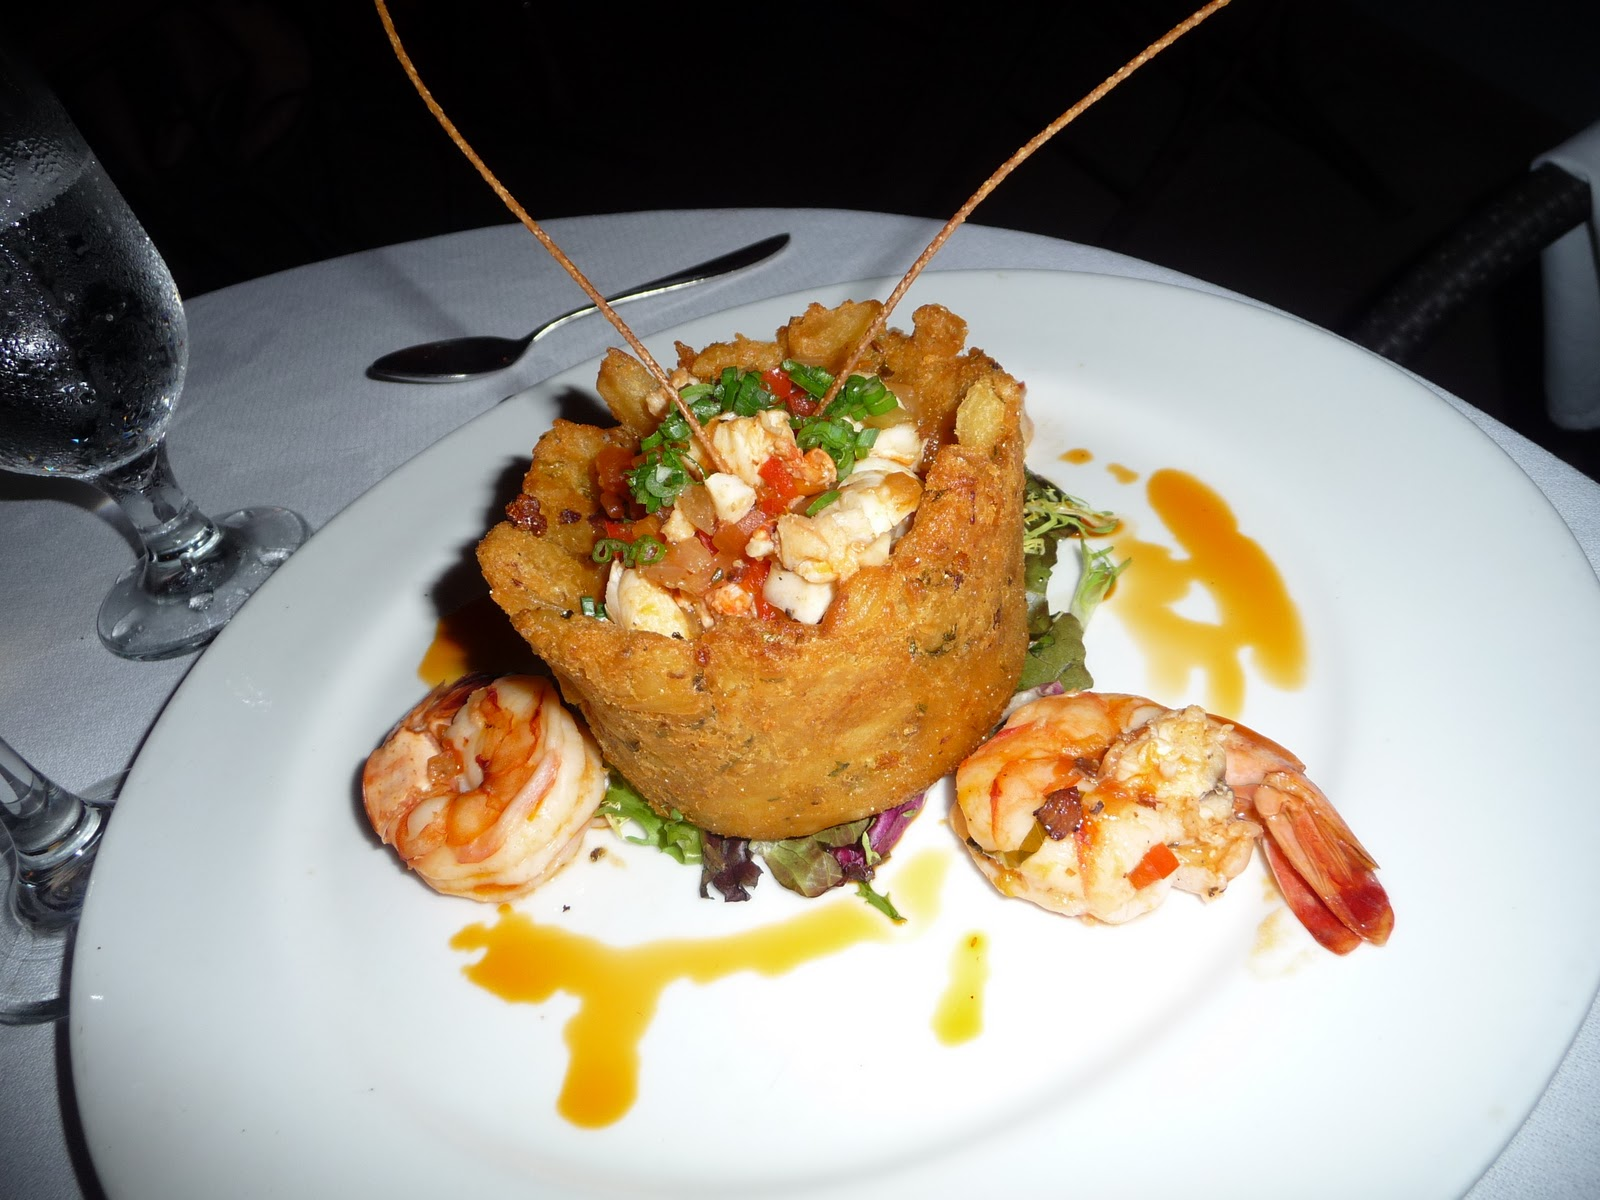 Shrimp and Lobster in a Mofongo Basket - Courtesy of 1.bp.blogspot.com